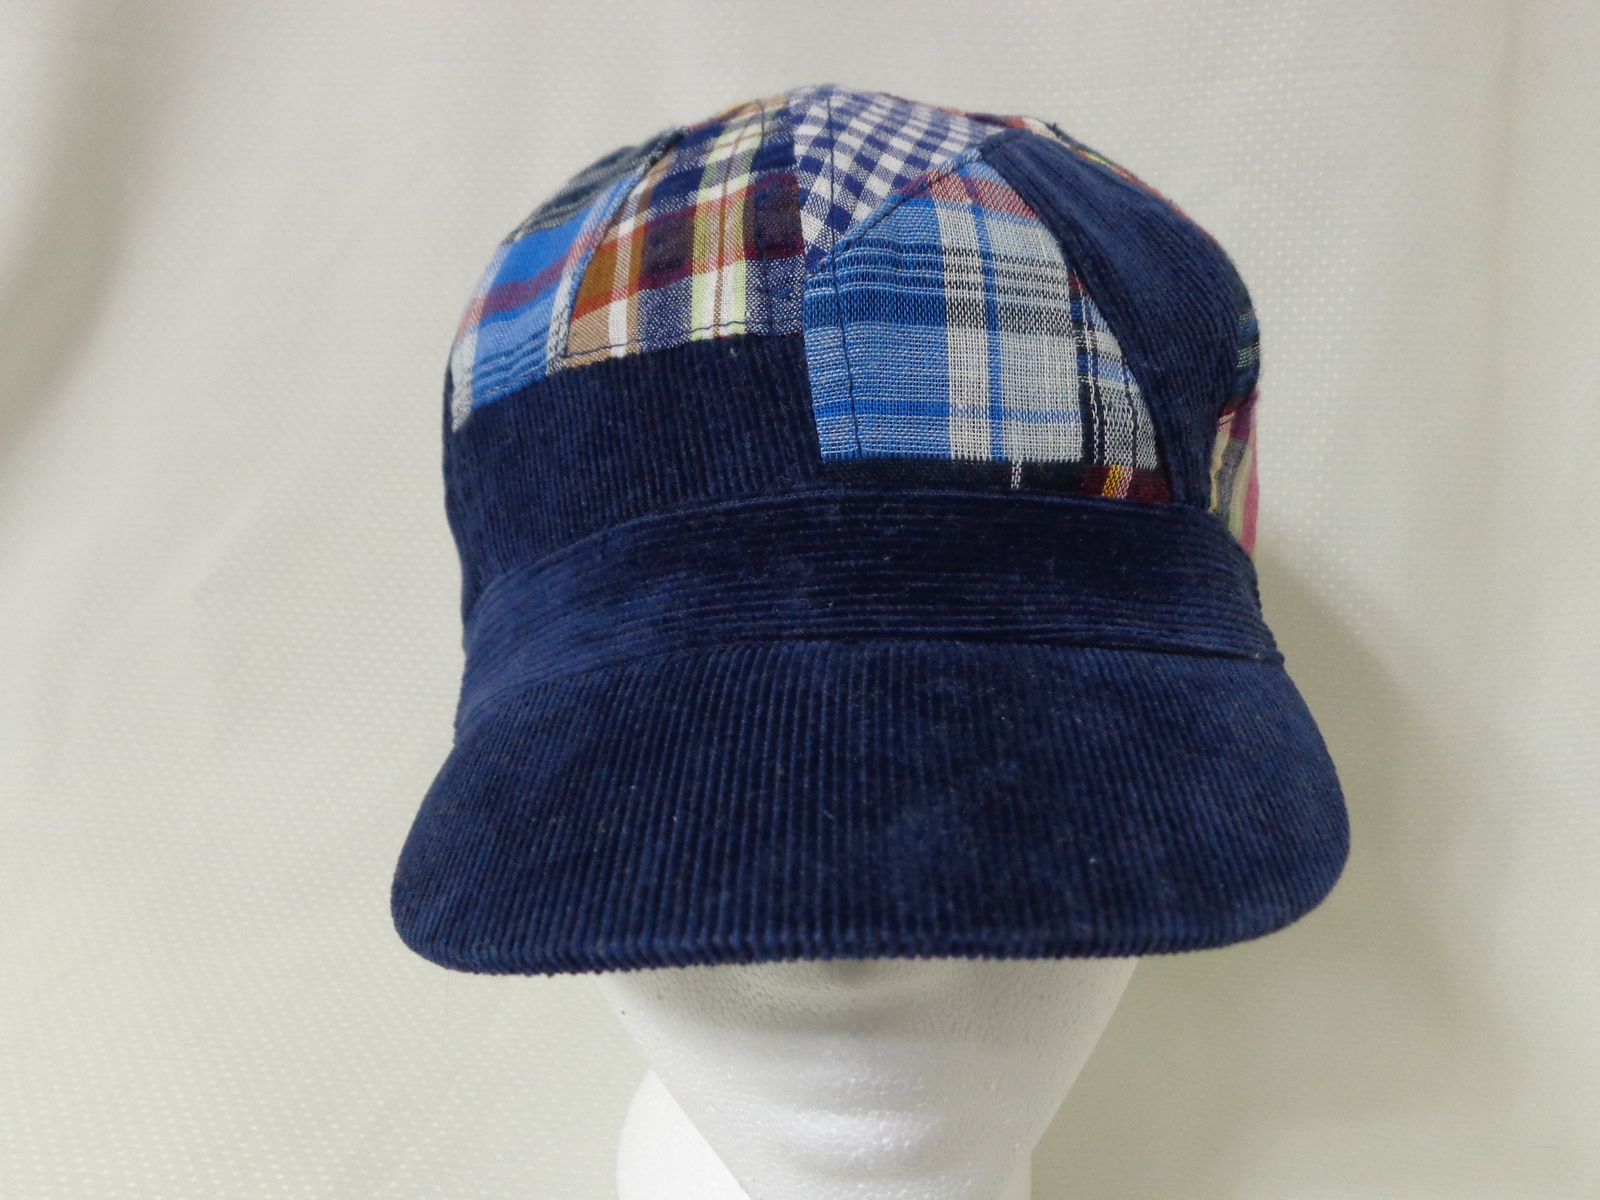 909e81b88f968 Madras and Corduroy Newsboy Cap XS-Small Size and 50 similar items